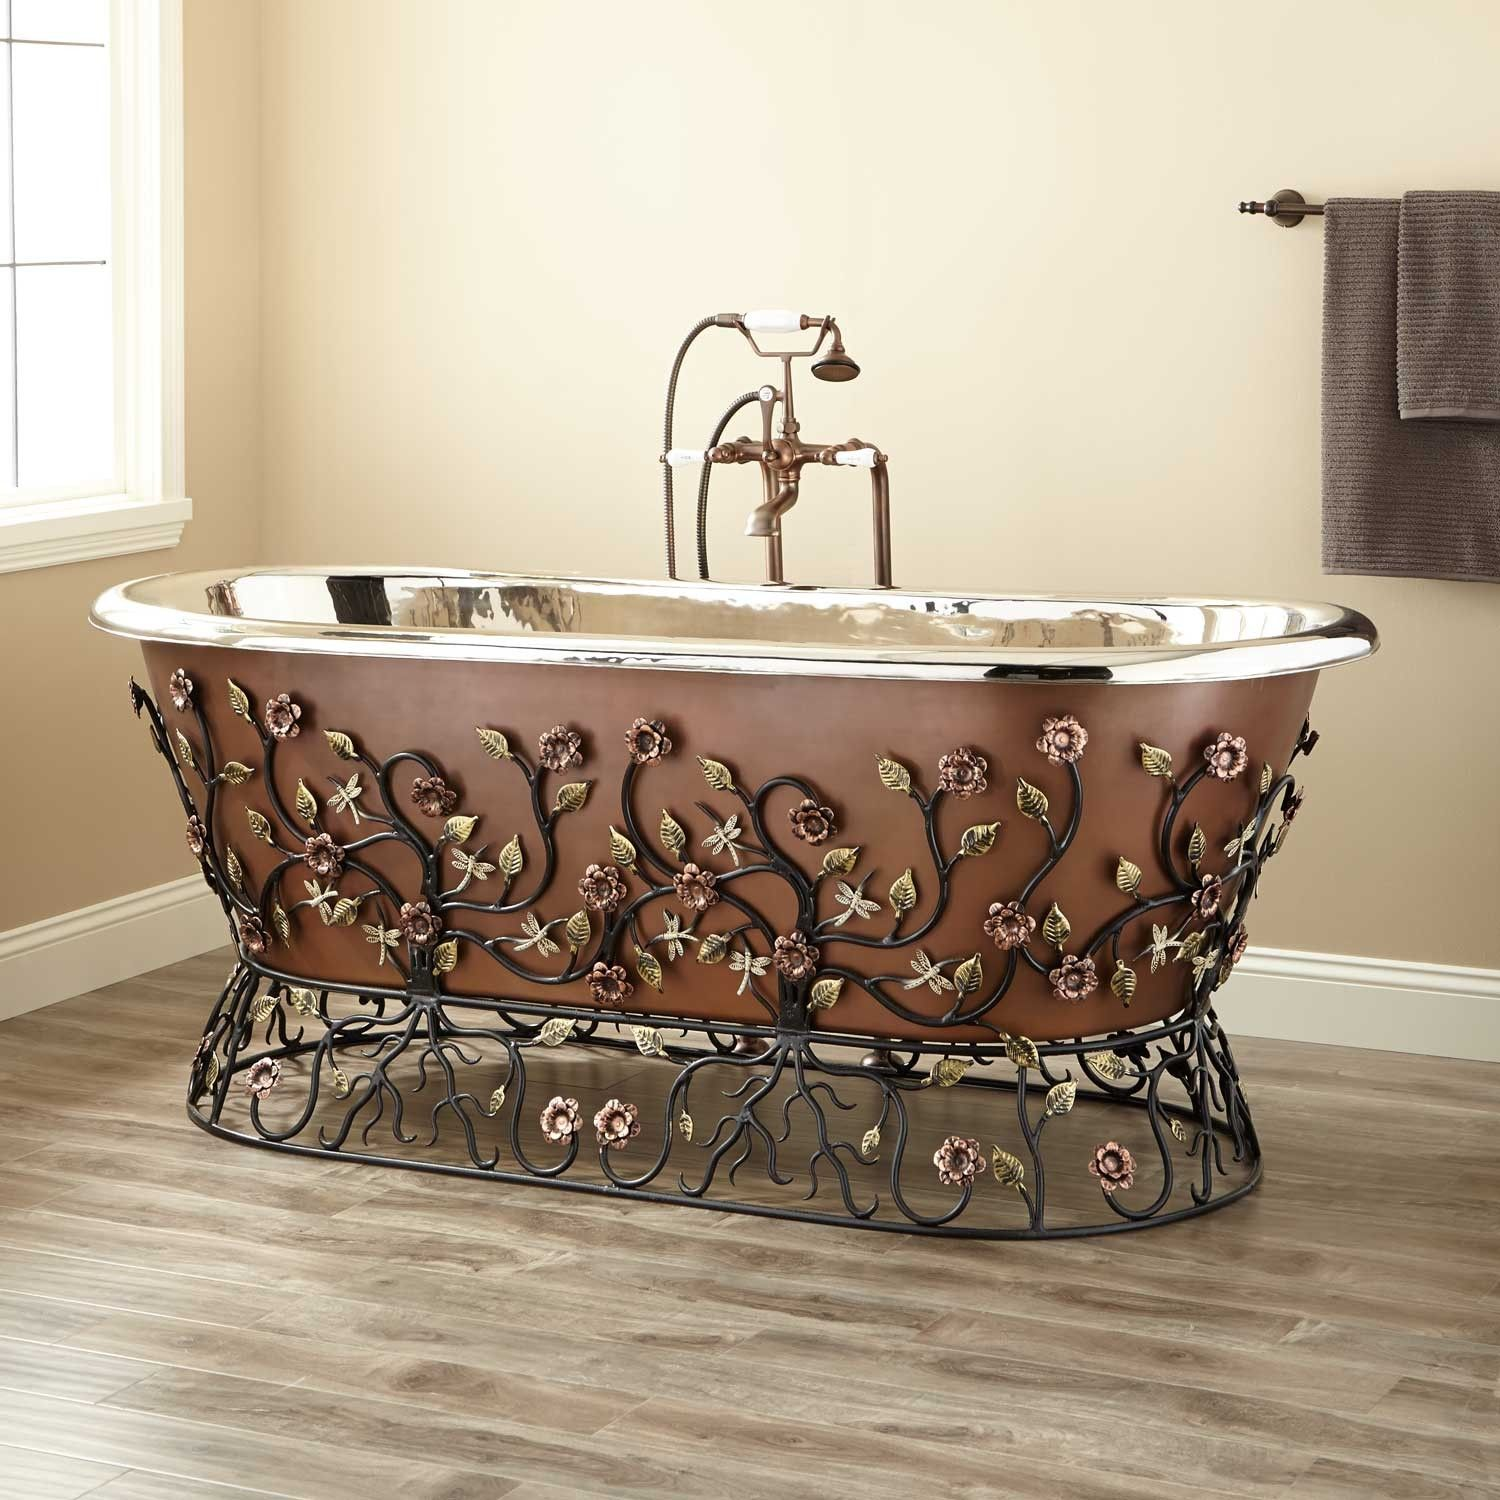 Flora Copper Tub W Wrought Iron Stand 71 Flora Smooth Copper